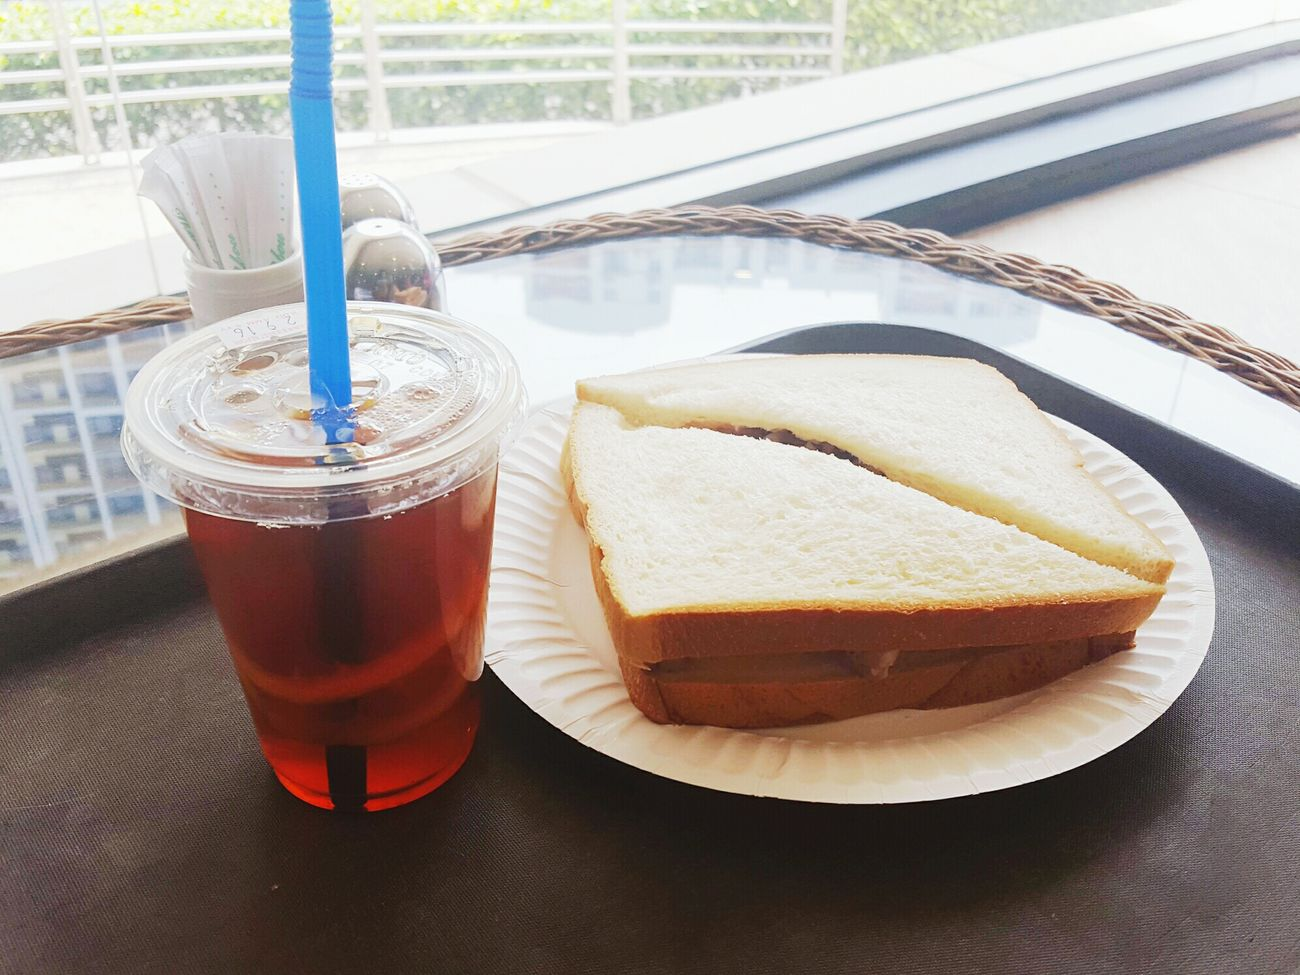 Lunch Break School Life  Food And Drink Refreshment Lemon Tea Sandwiches